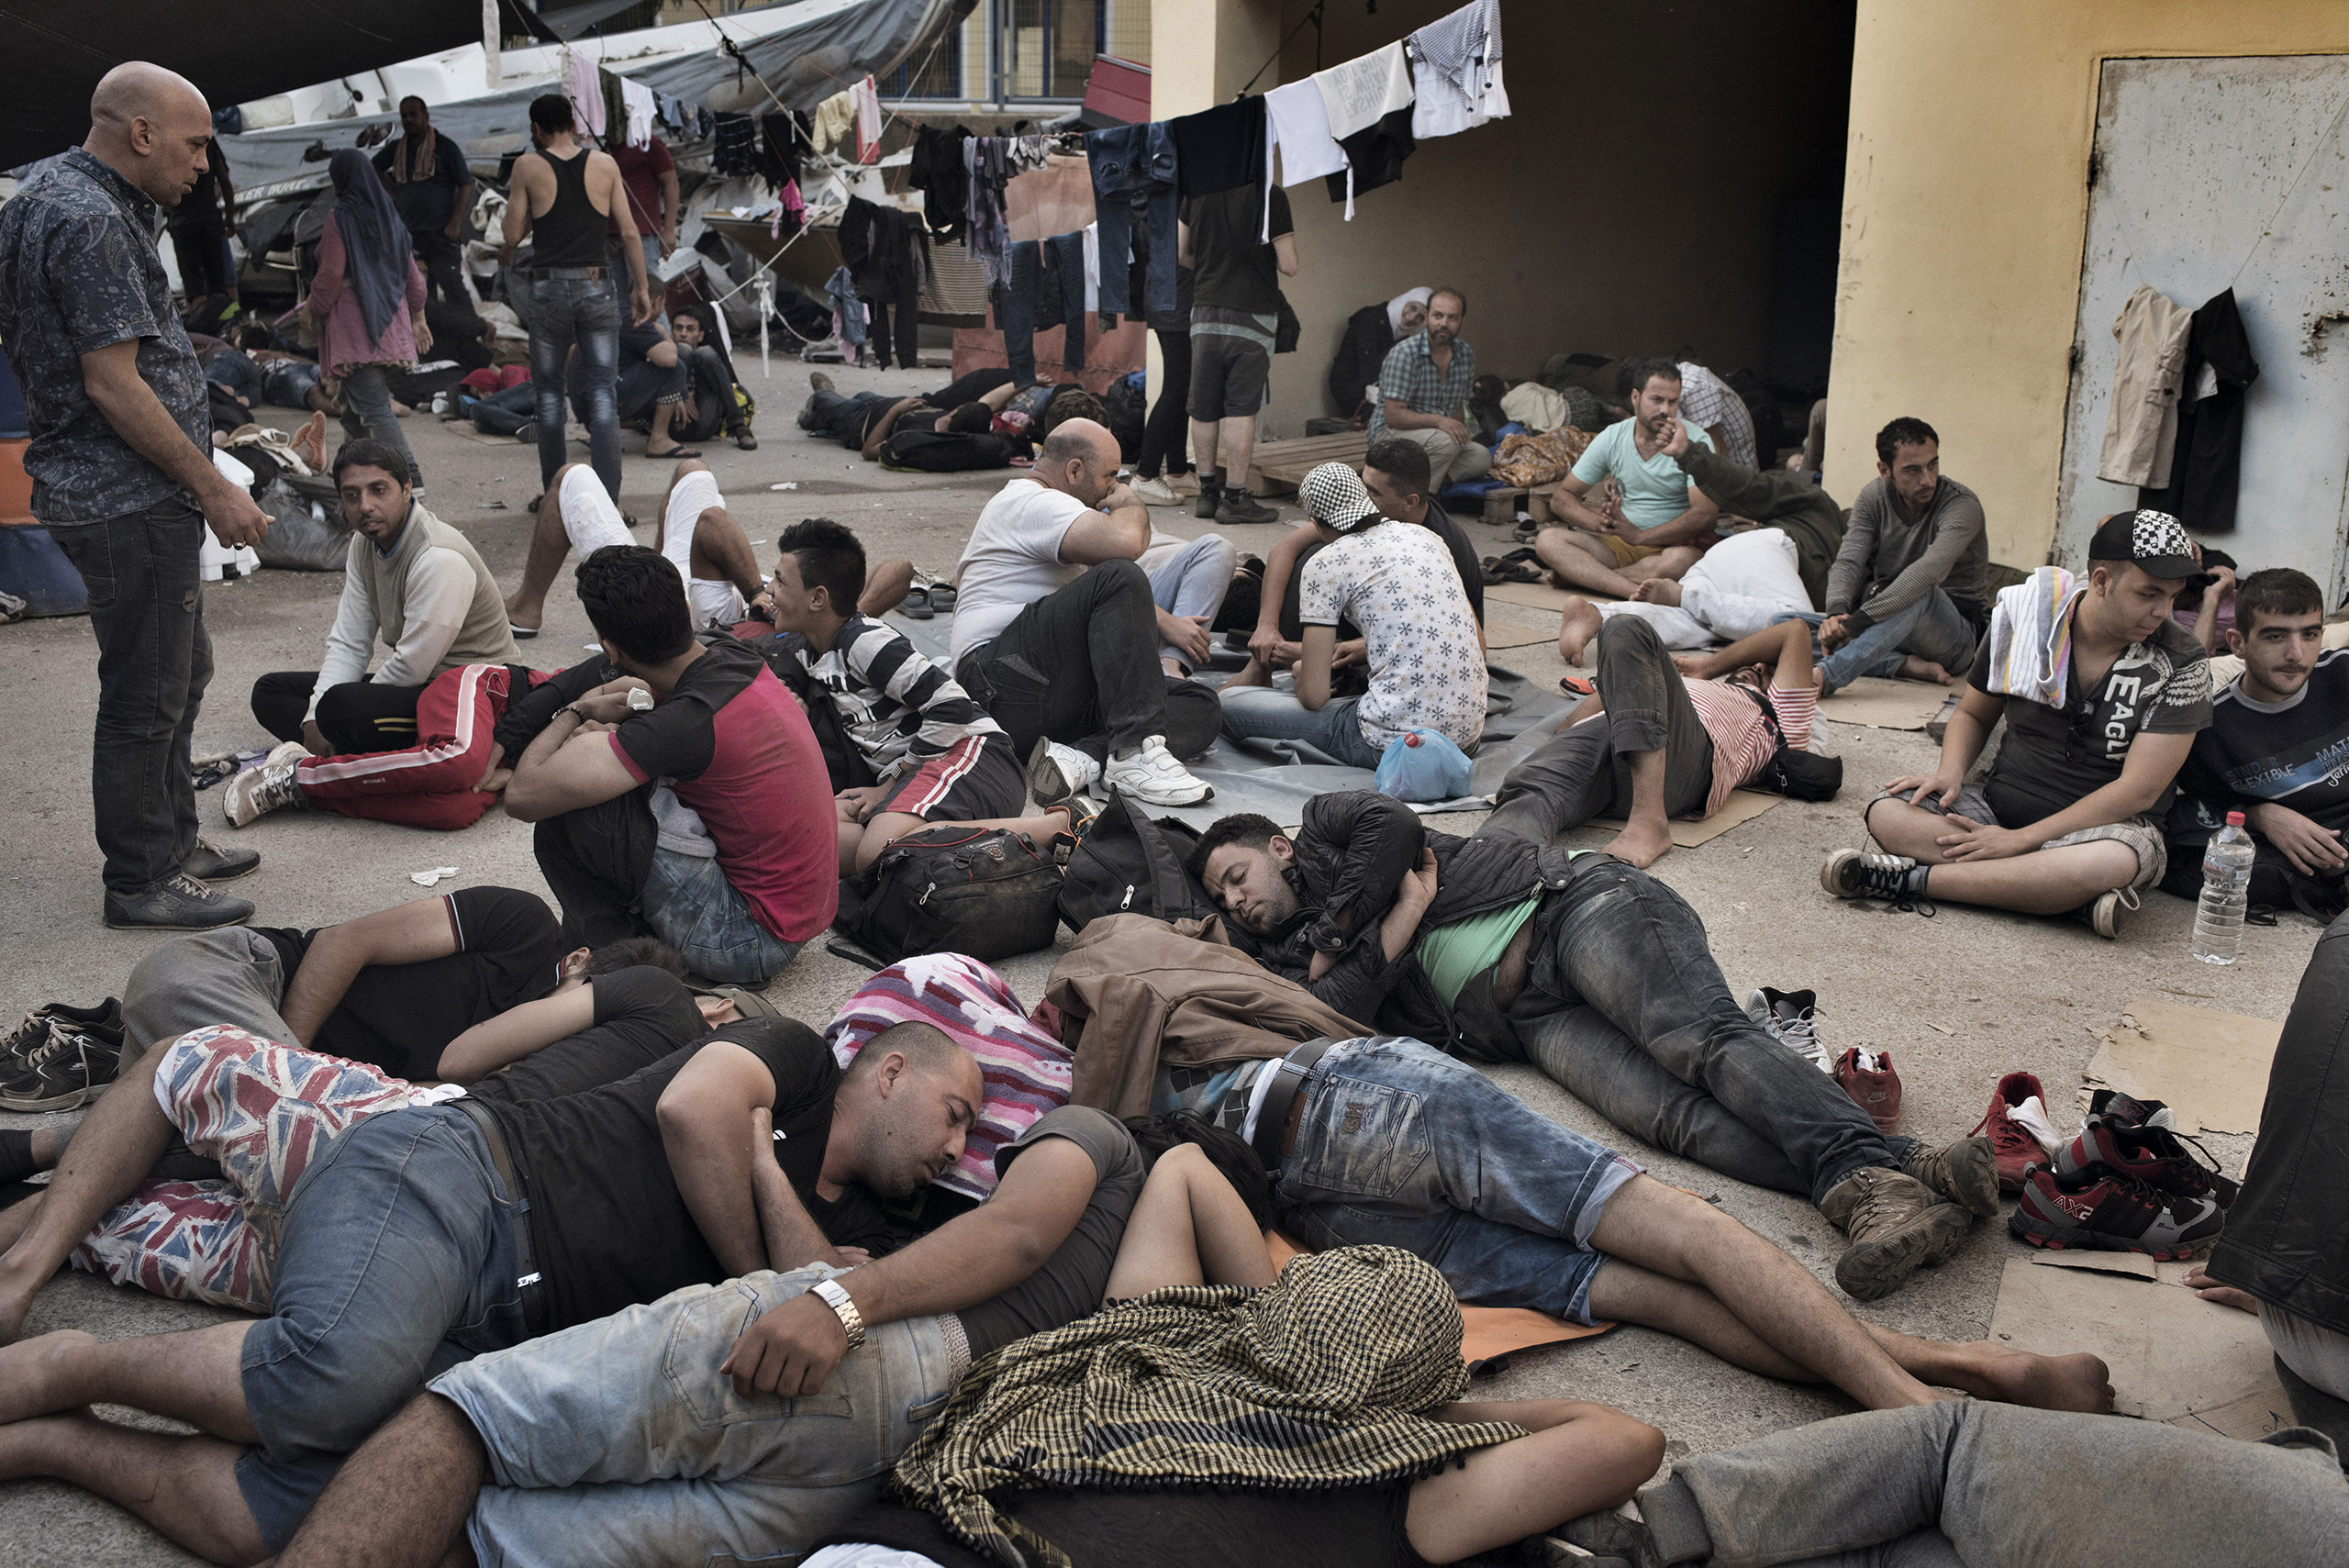 A camp full of migrants awakens in the courtyard of the Greek coast guard's station on the island of Leros, Greece, where they are waiting for the documents they will need to travel onward from to Western Europe. Sept. 5, 2015.